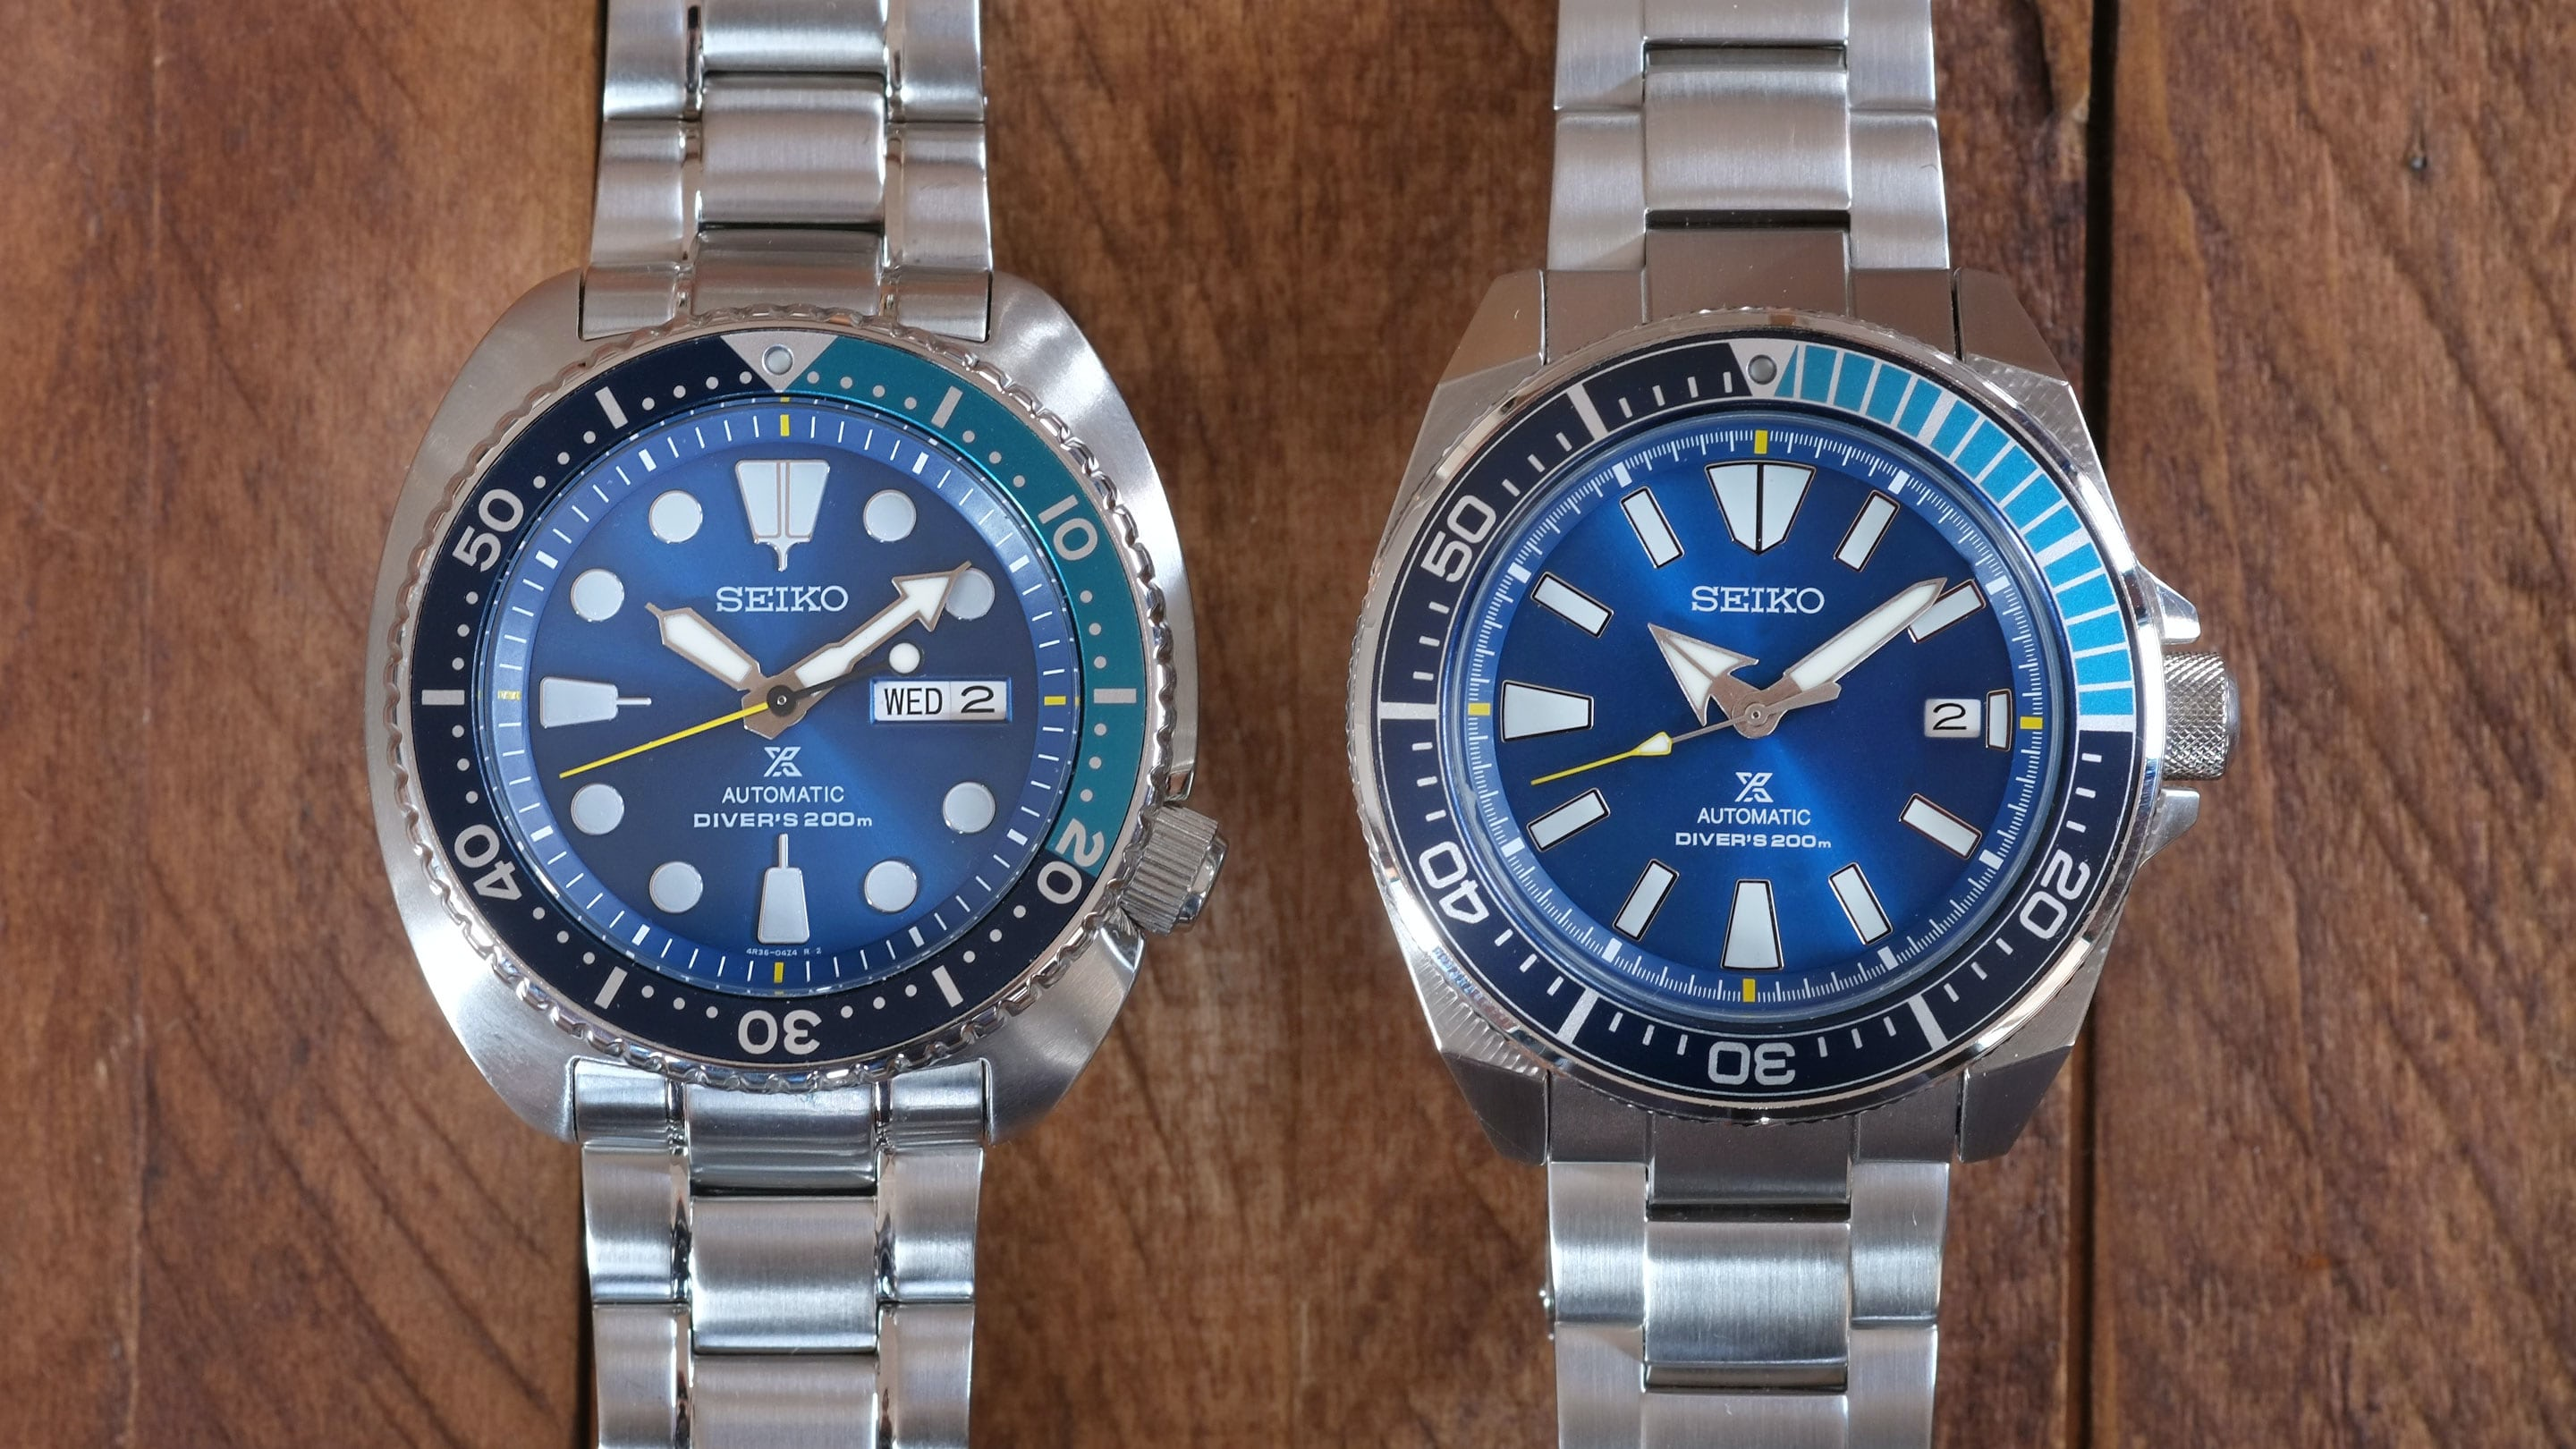 Hands On The Blue Lagoon Samurai And Turtle Two New Limited Seiko Skx007k2 Automatic Divers 200m Black Dial Edition Prospex References Srpb09 Srpb11 Hodinkee